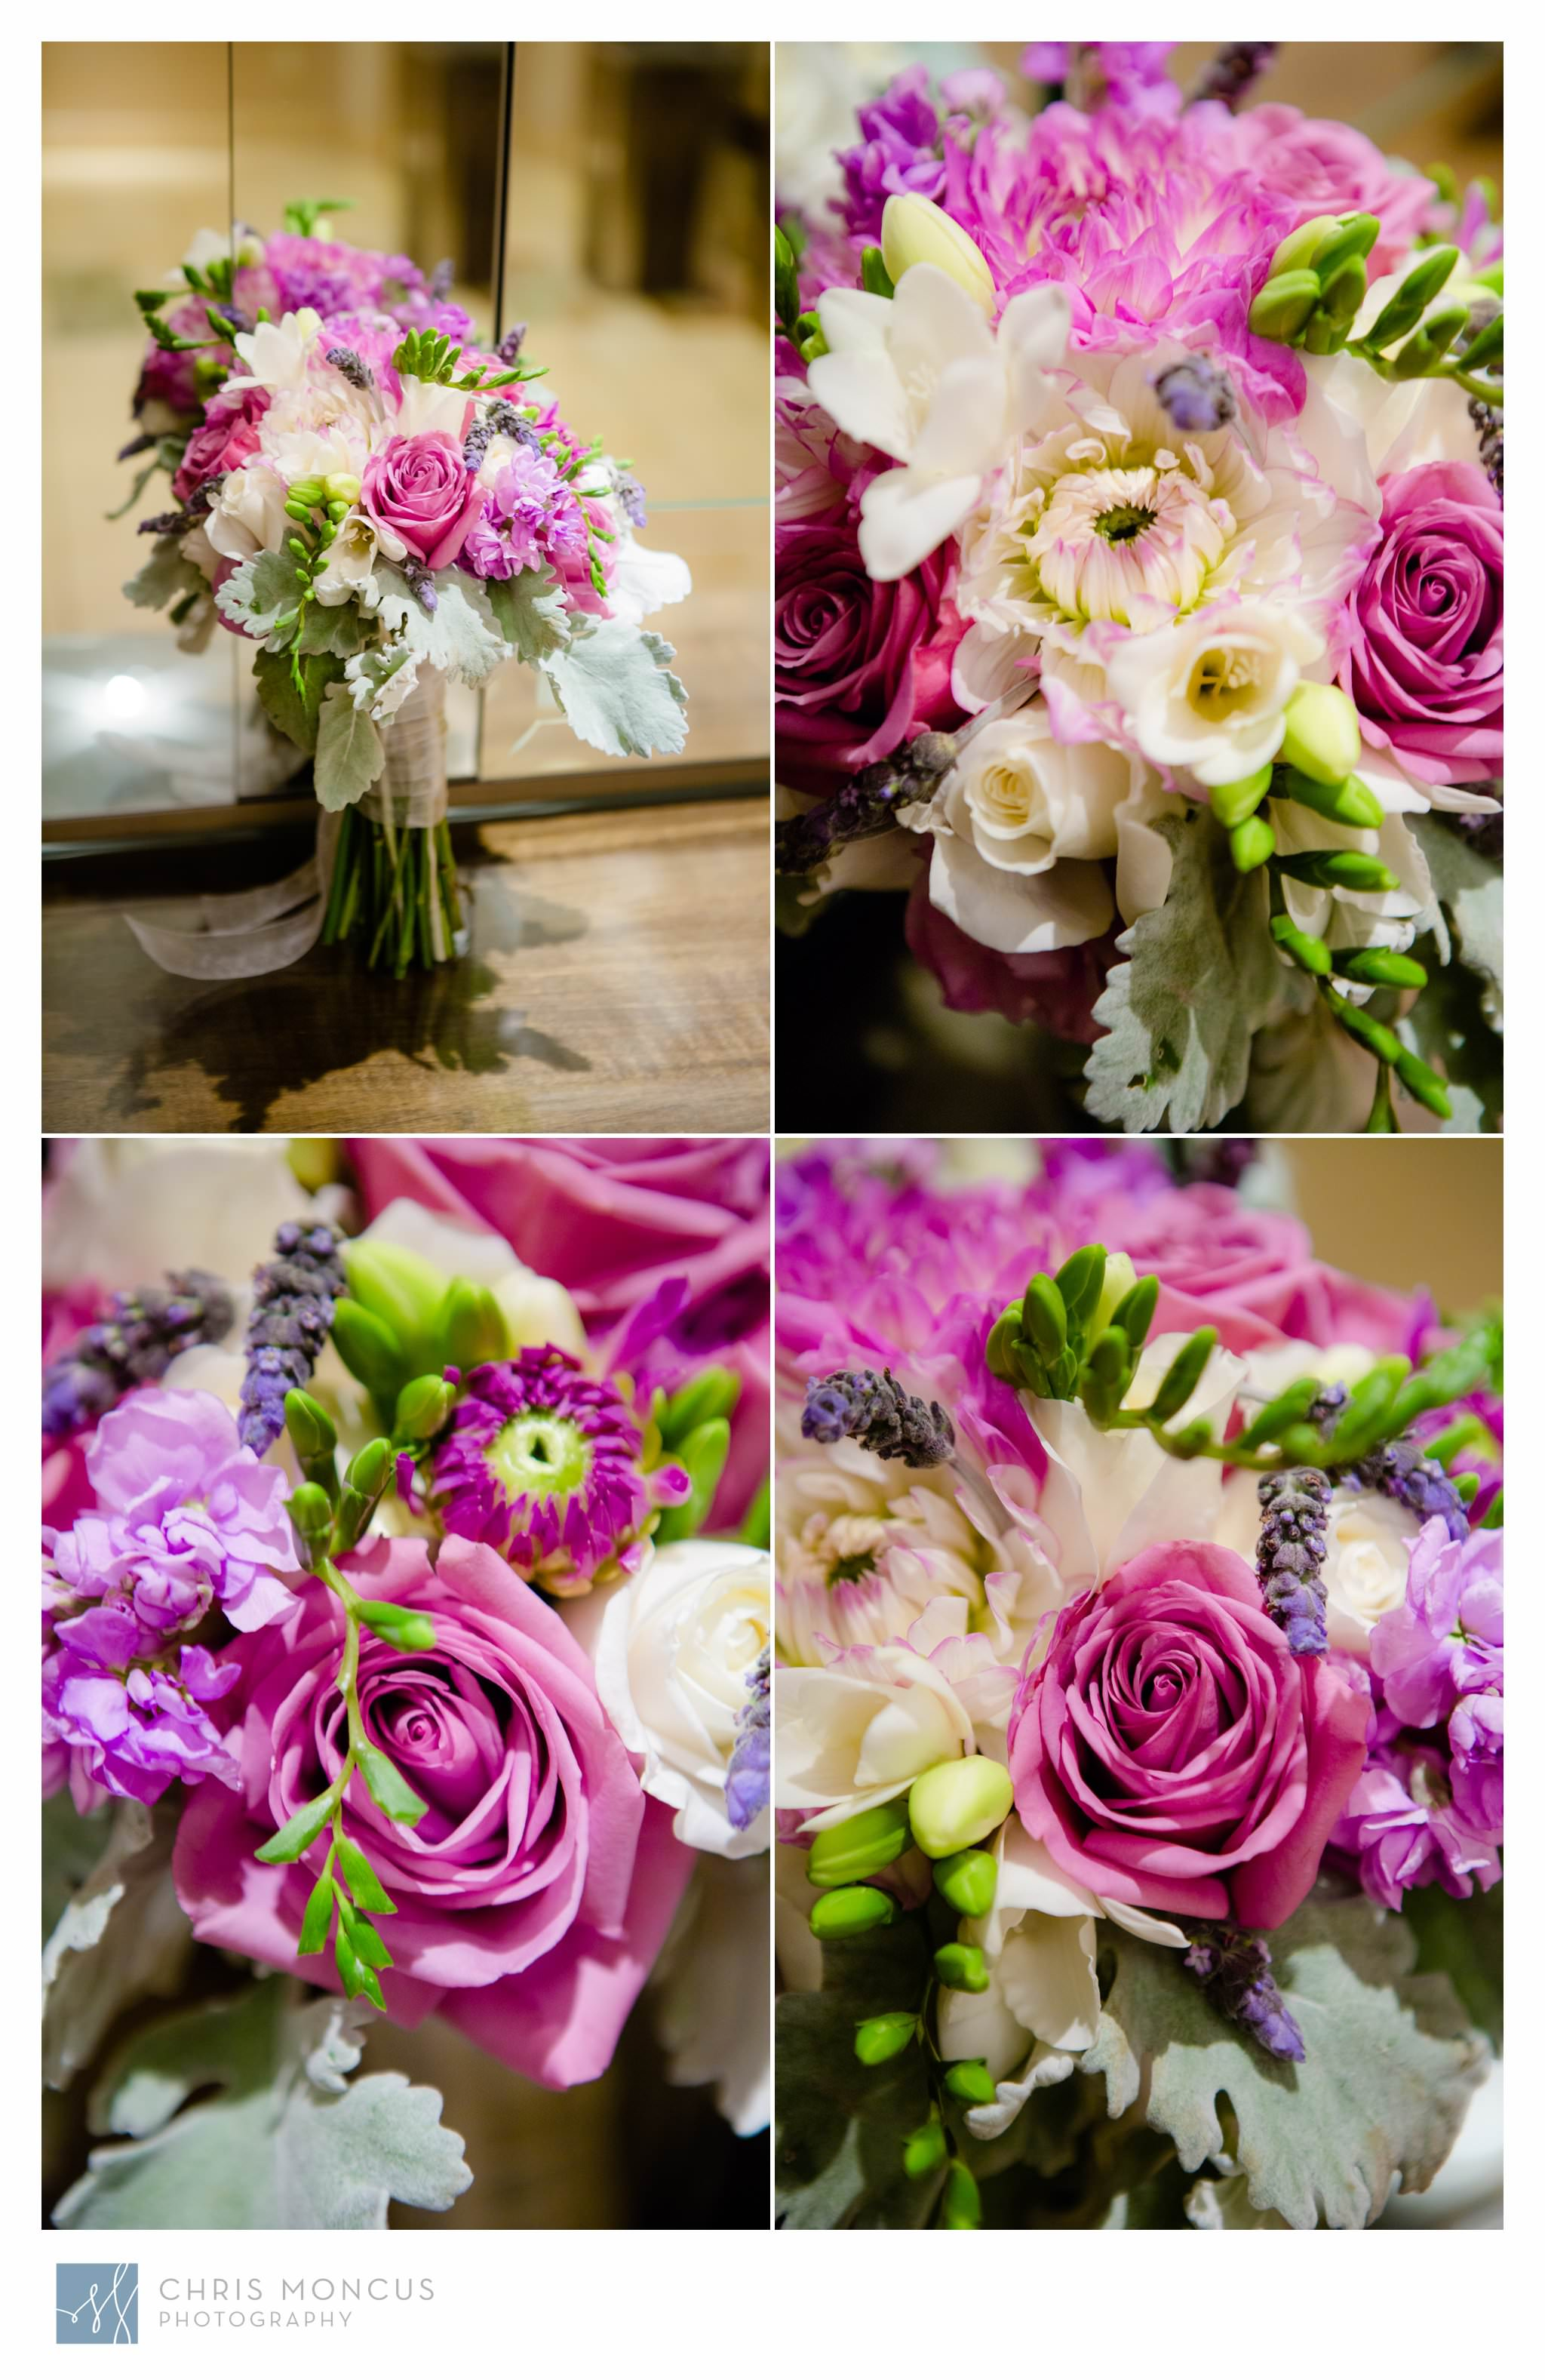 Wedding Bouquet in Aliante Casino Lobby Las Vegas